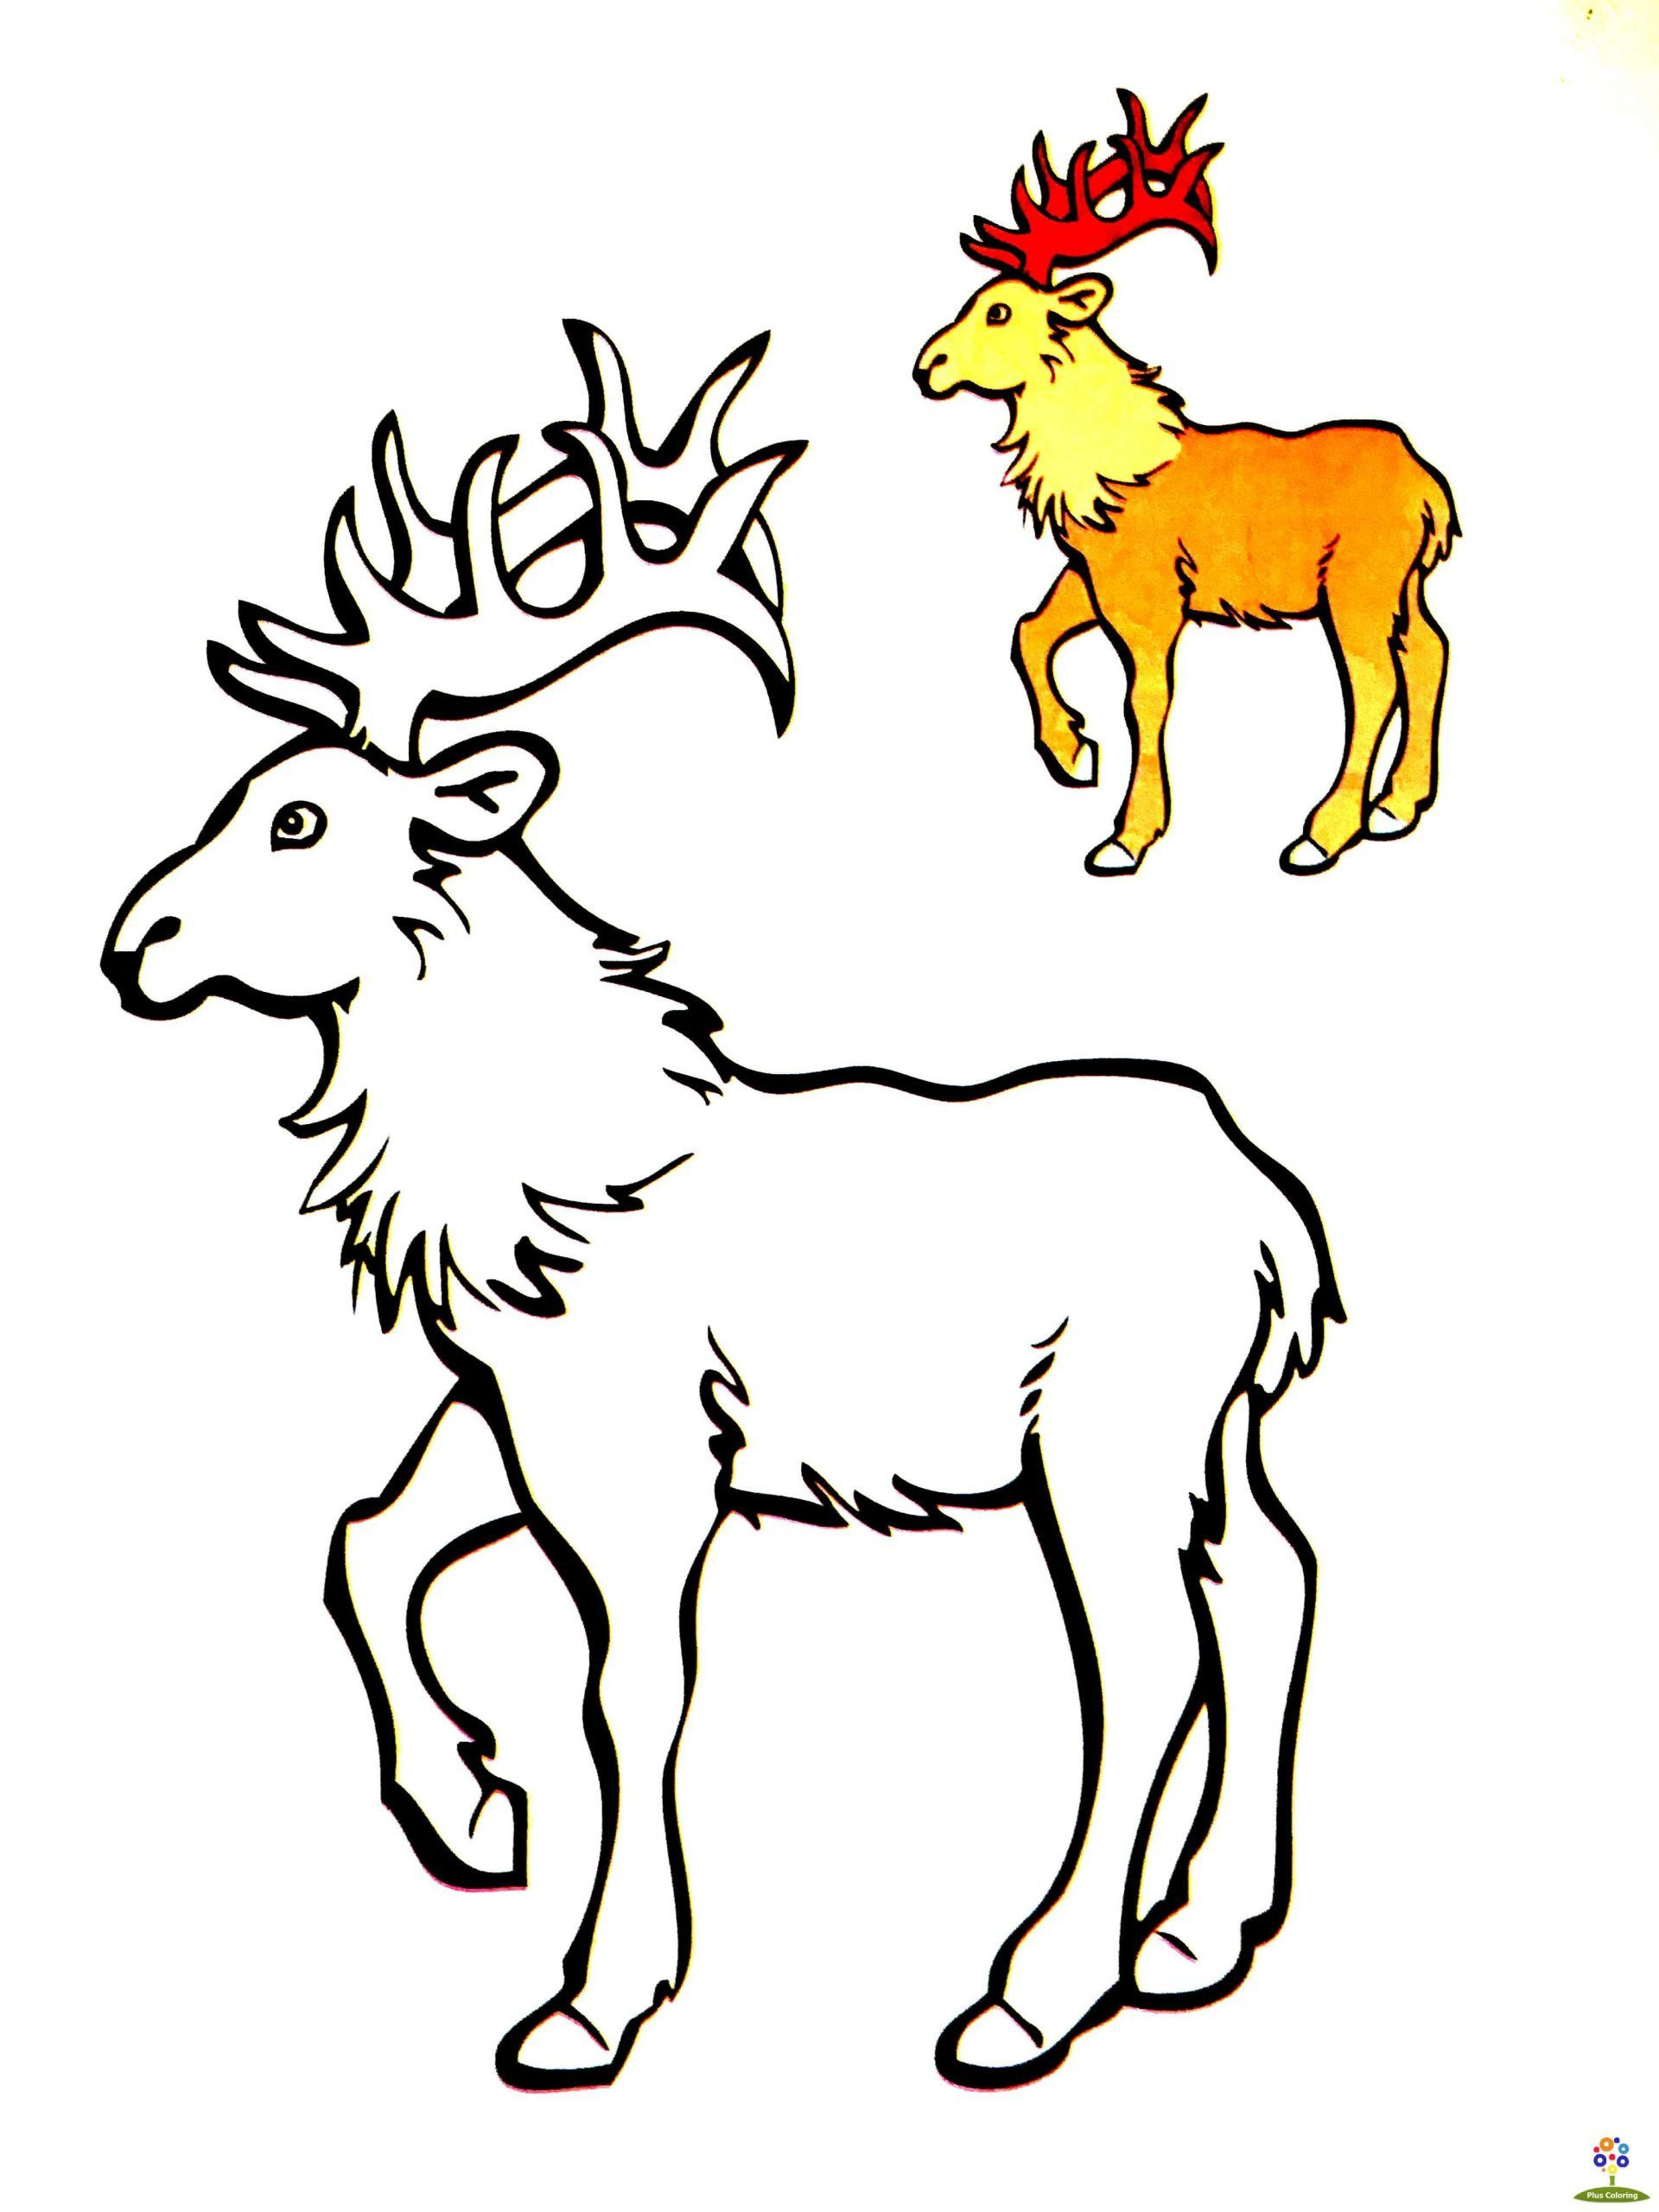 7 Zoo Animals Worksheets For Kindergarten Cute Zooal Coloring Pages Free Printable Sheets For Zoo Animal Coloring Pages Zoo Animals Animal Coloring Pages [ 2560 x 1920 Pixel ]